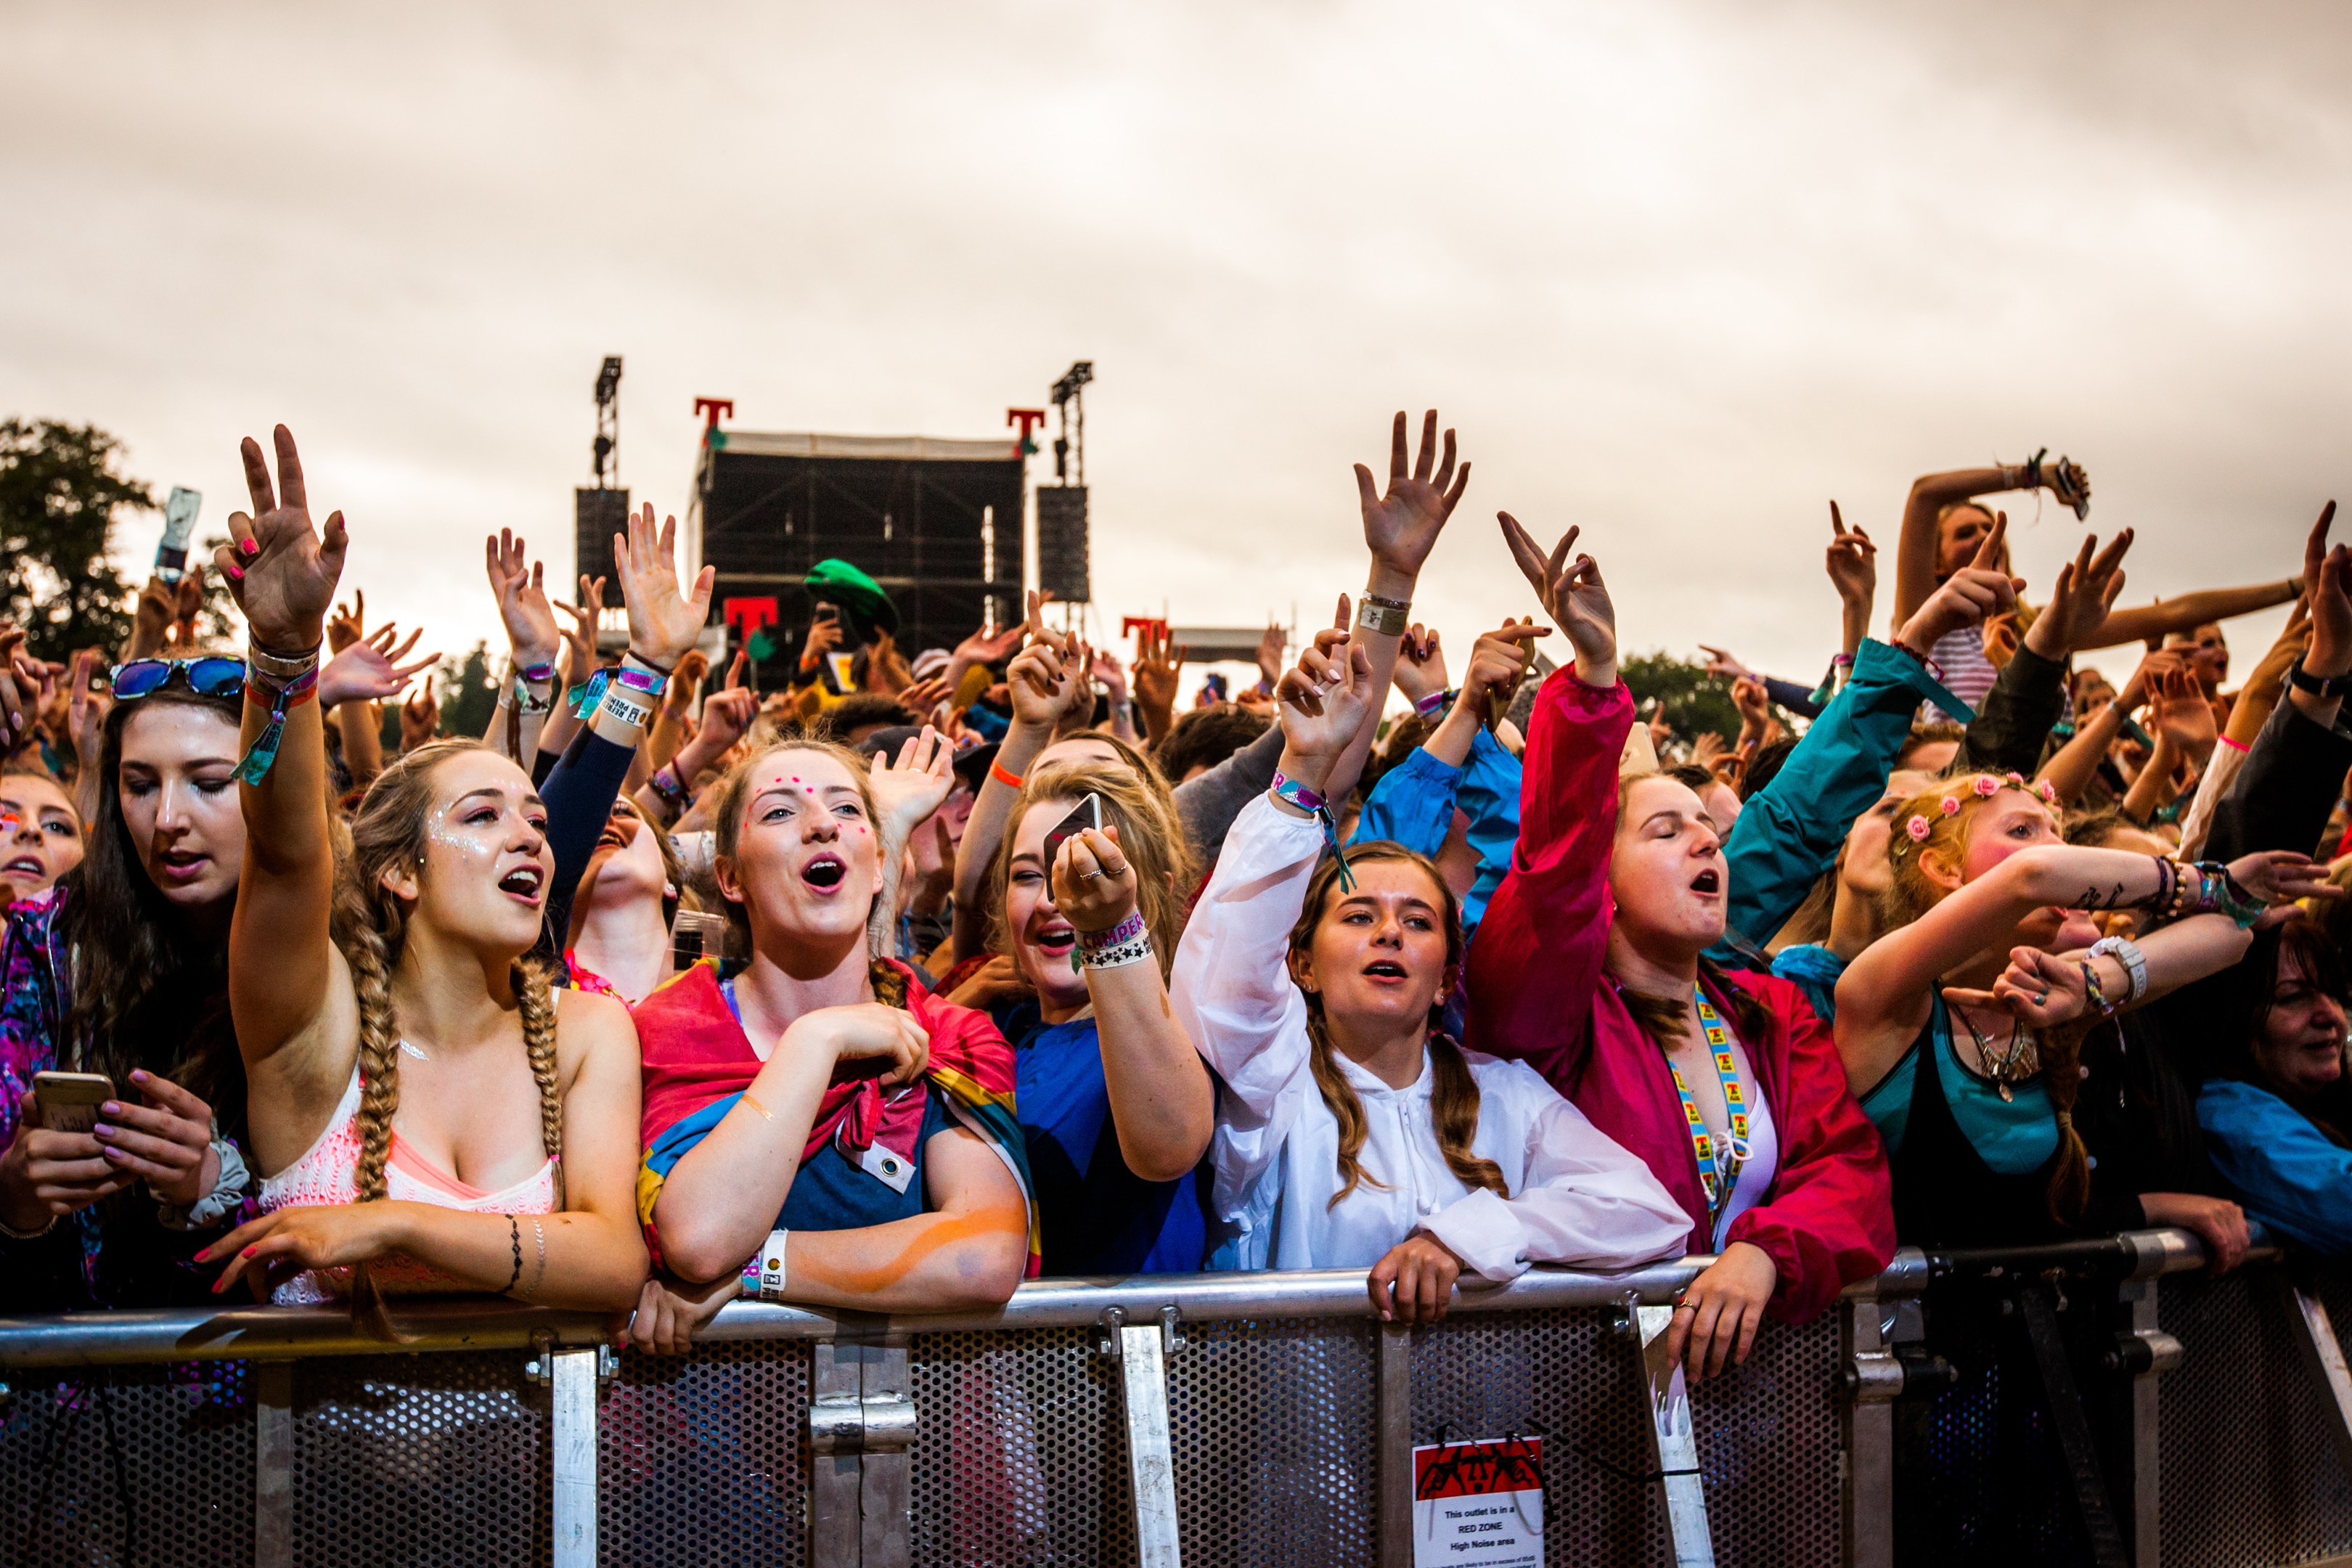 Crowds at T in the Park.